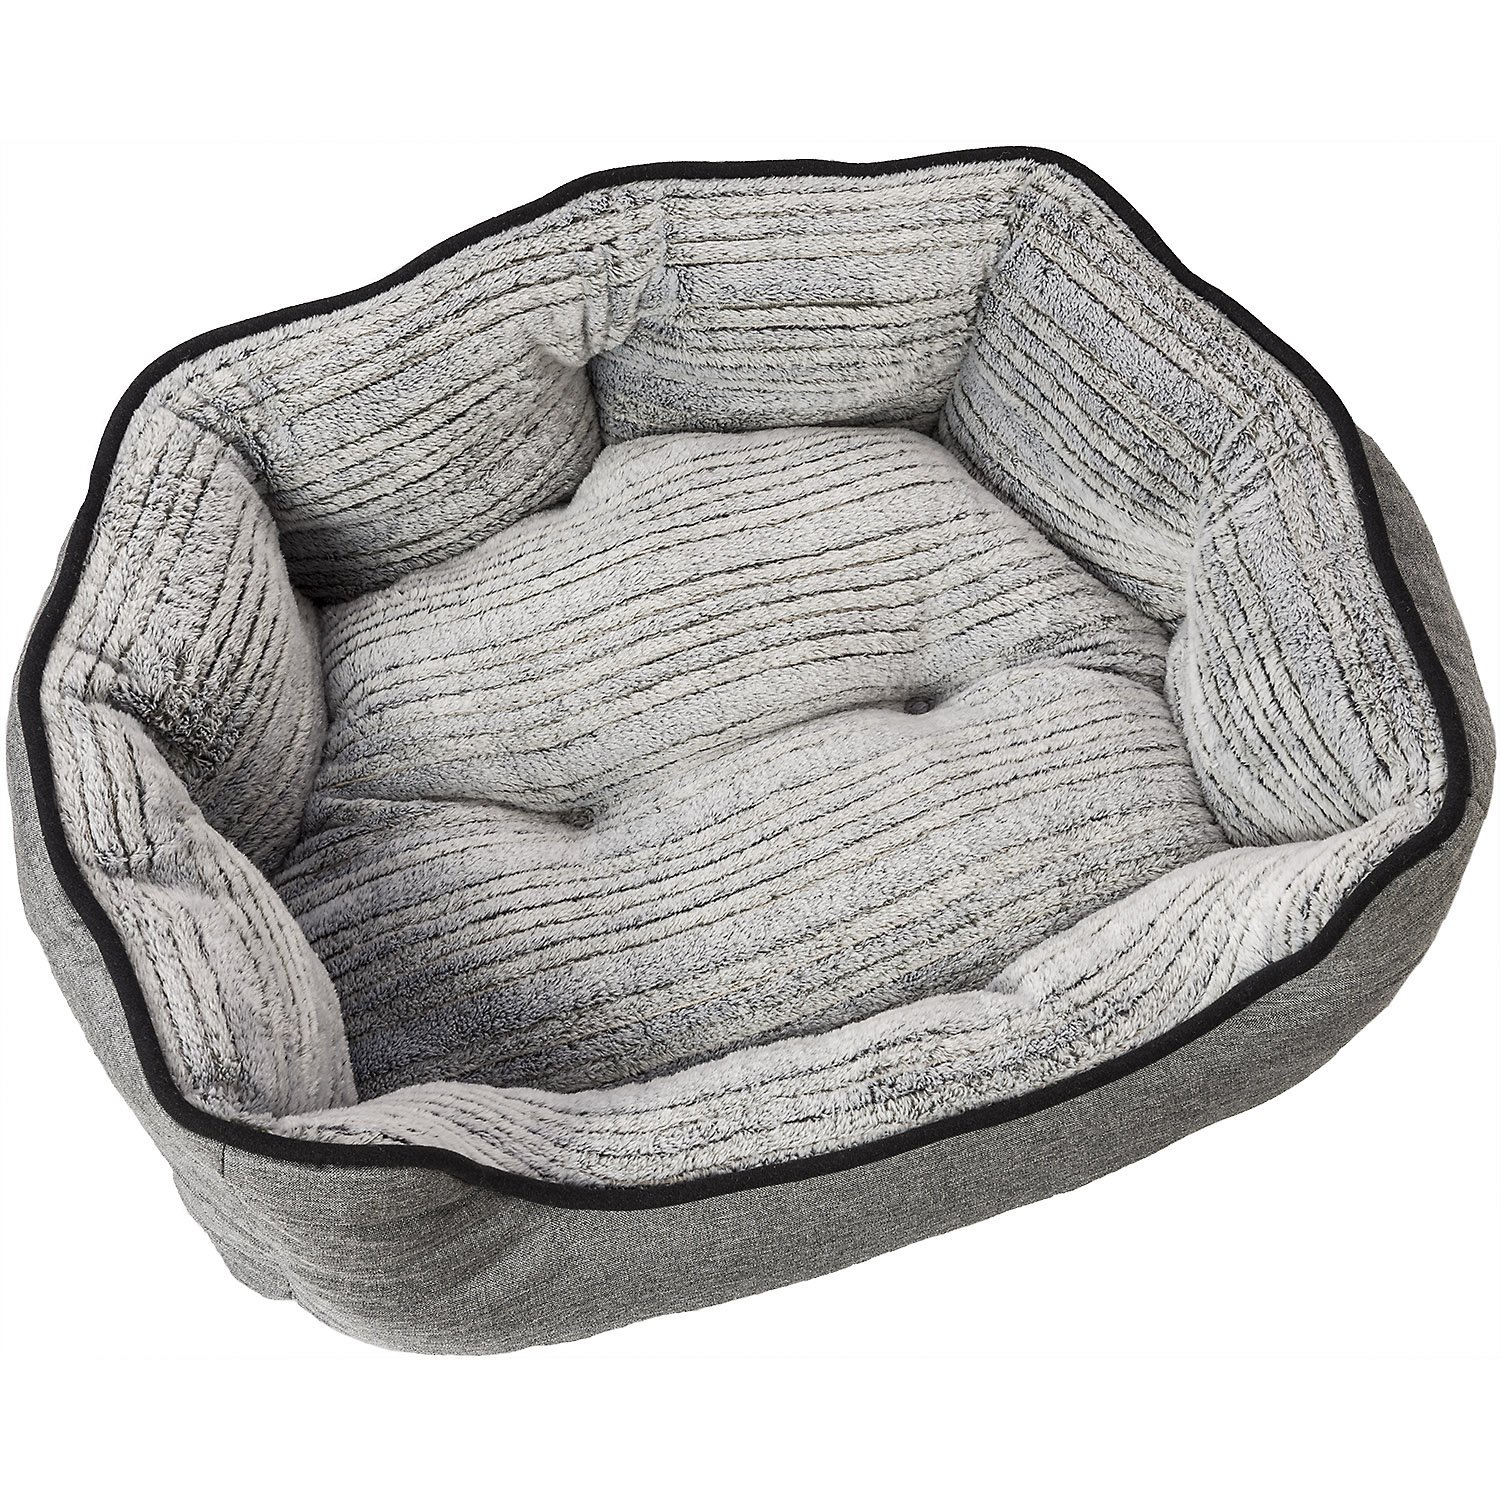 24 Inch Ethical Pets Sleep Zone Clam Shell Pet Beds